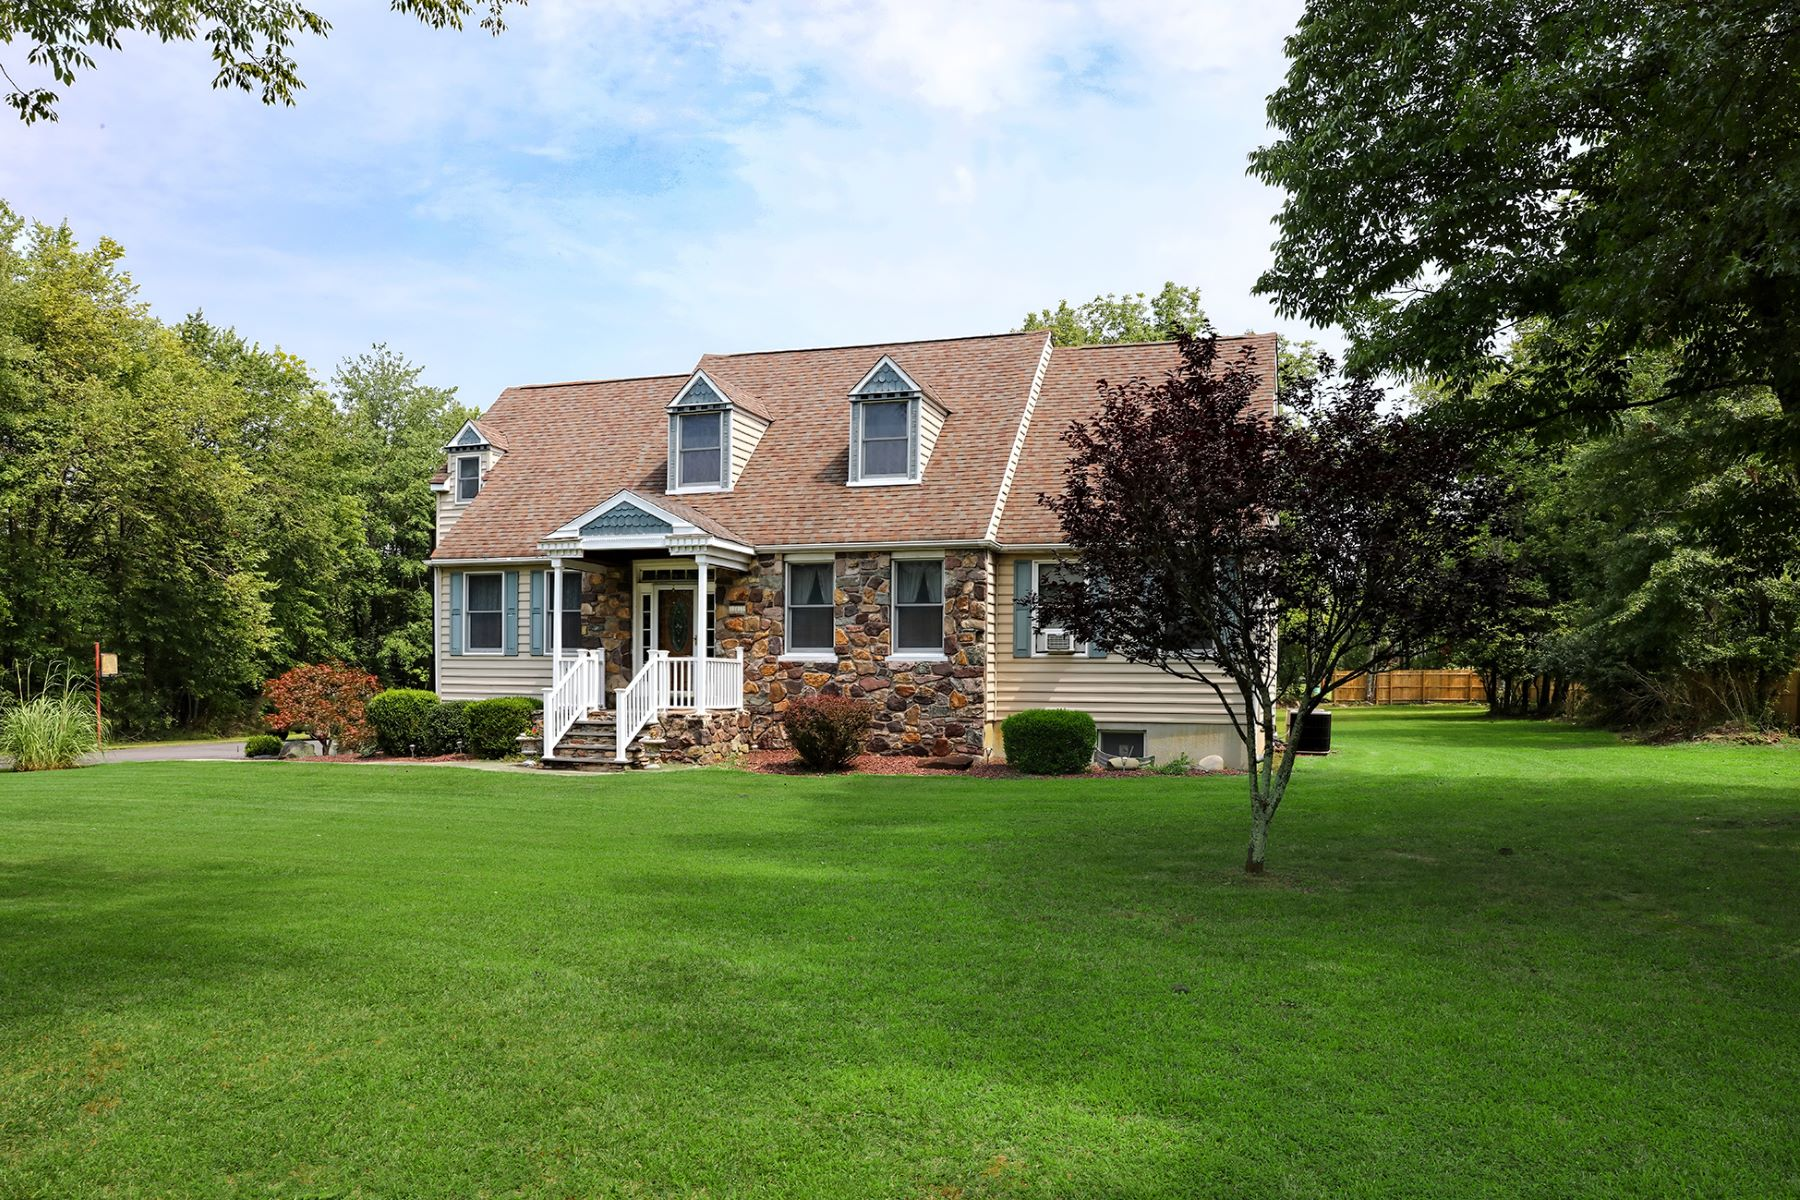 A Bucolic Setting To Showcase This Custom Home 263 Goat Hill Road, Lambertville, New Jersey 08530 États-Unis